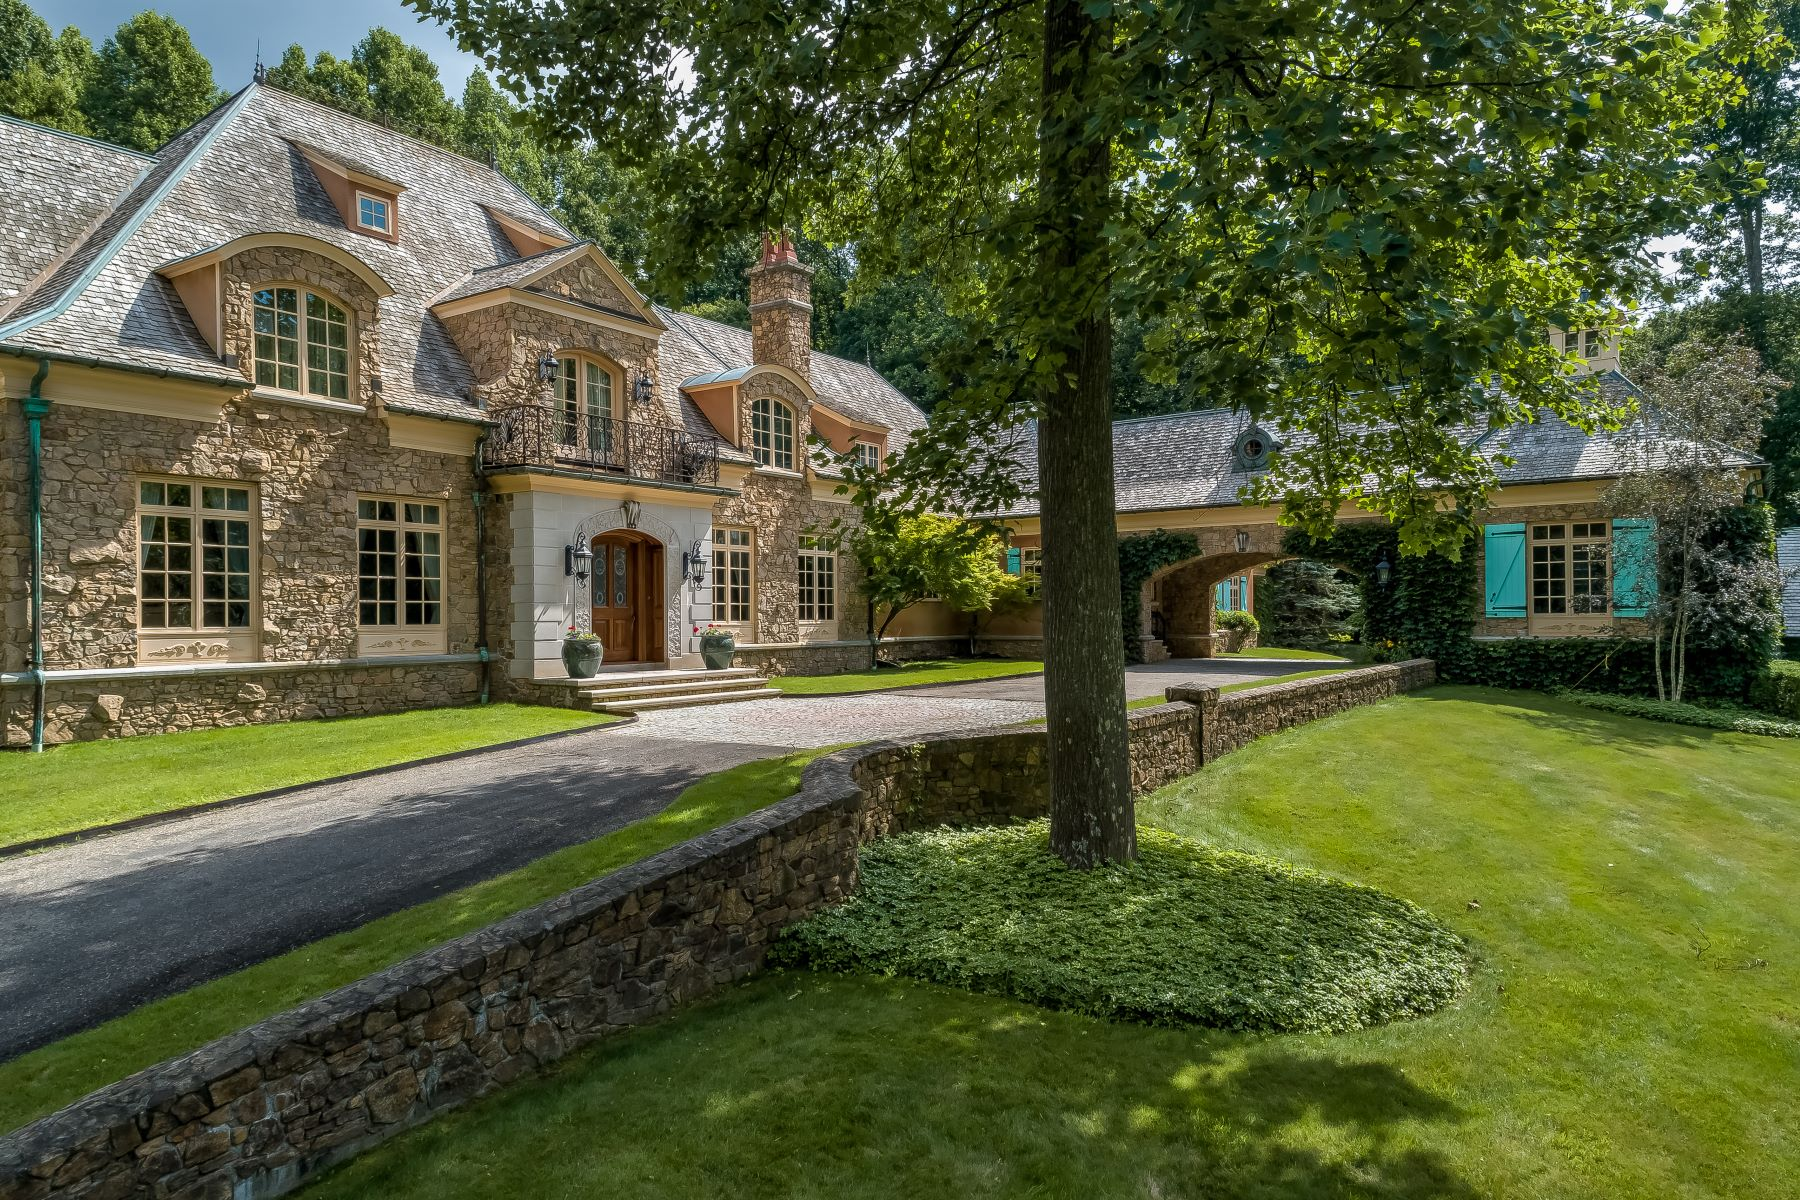 Single Family Home for Sale at French Country Masterpiece 8 Chapel Lane, Mendham Borough, New Jersey 07945 United States